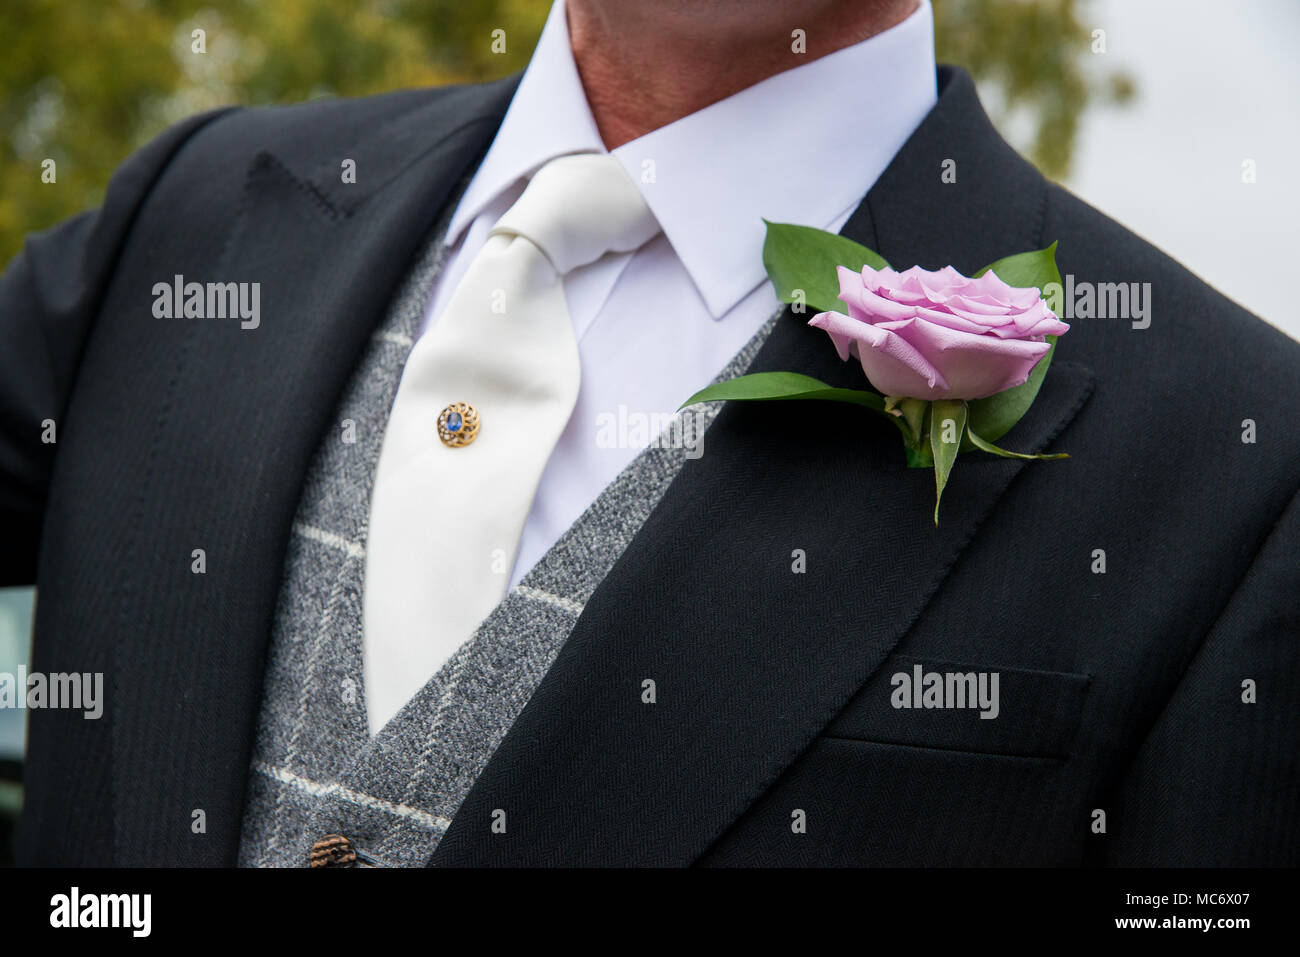 Wedding buttonhole of a single pink old fashioned rose against a dark suit with grey large check waistcoat, white tie and shirt, with jewelled tie pin - Stock Image